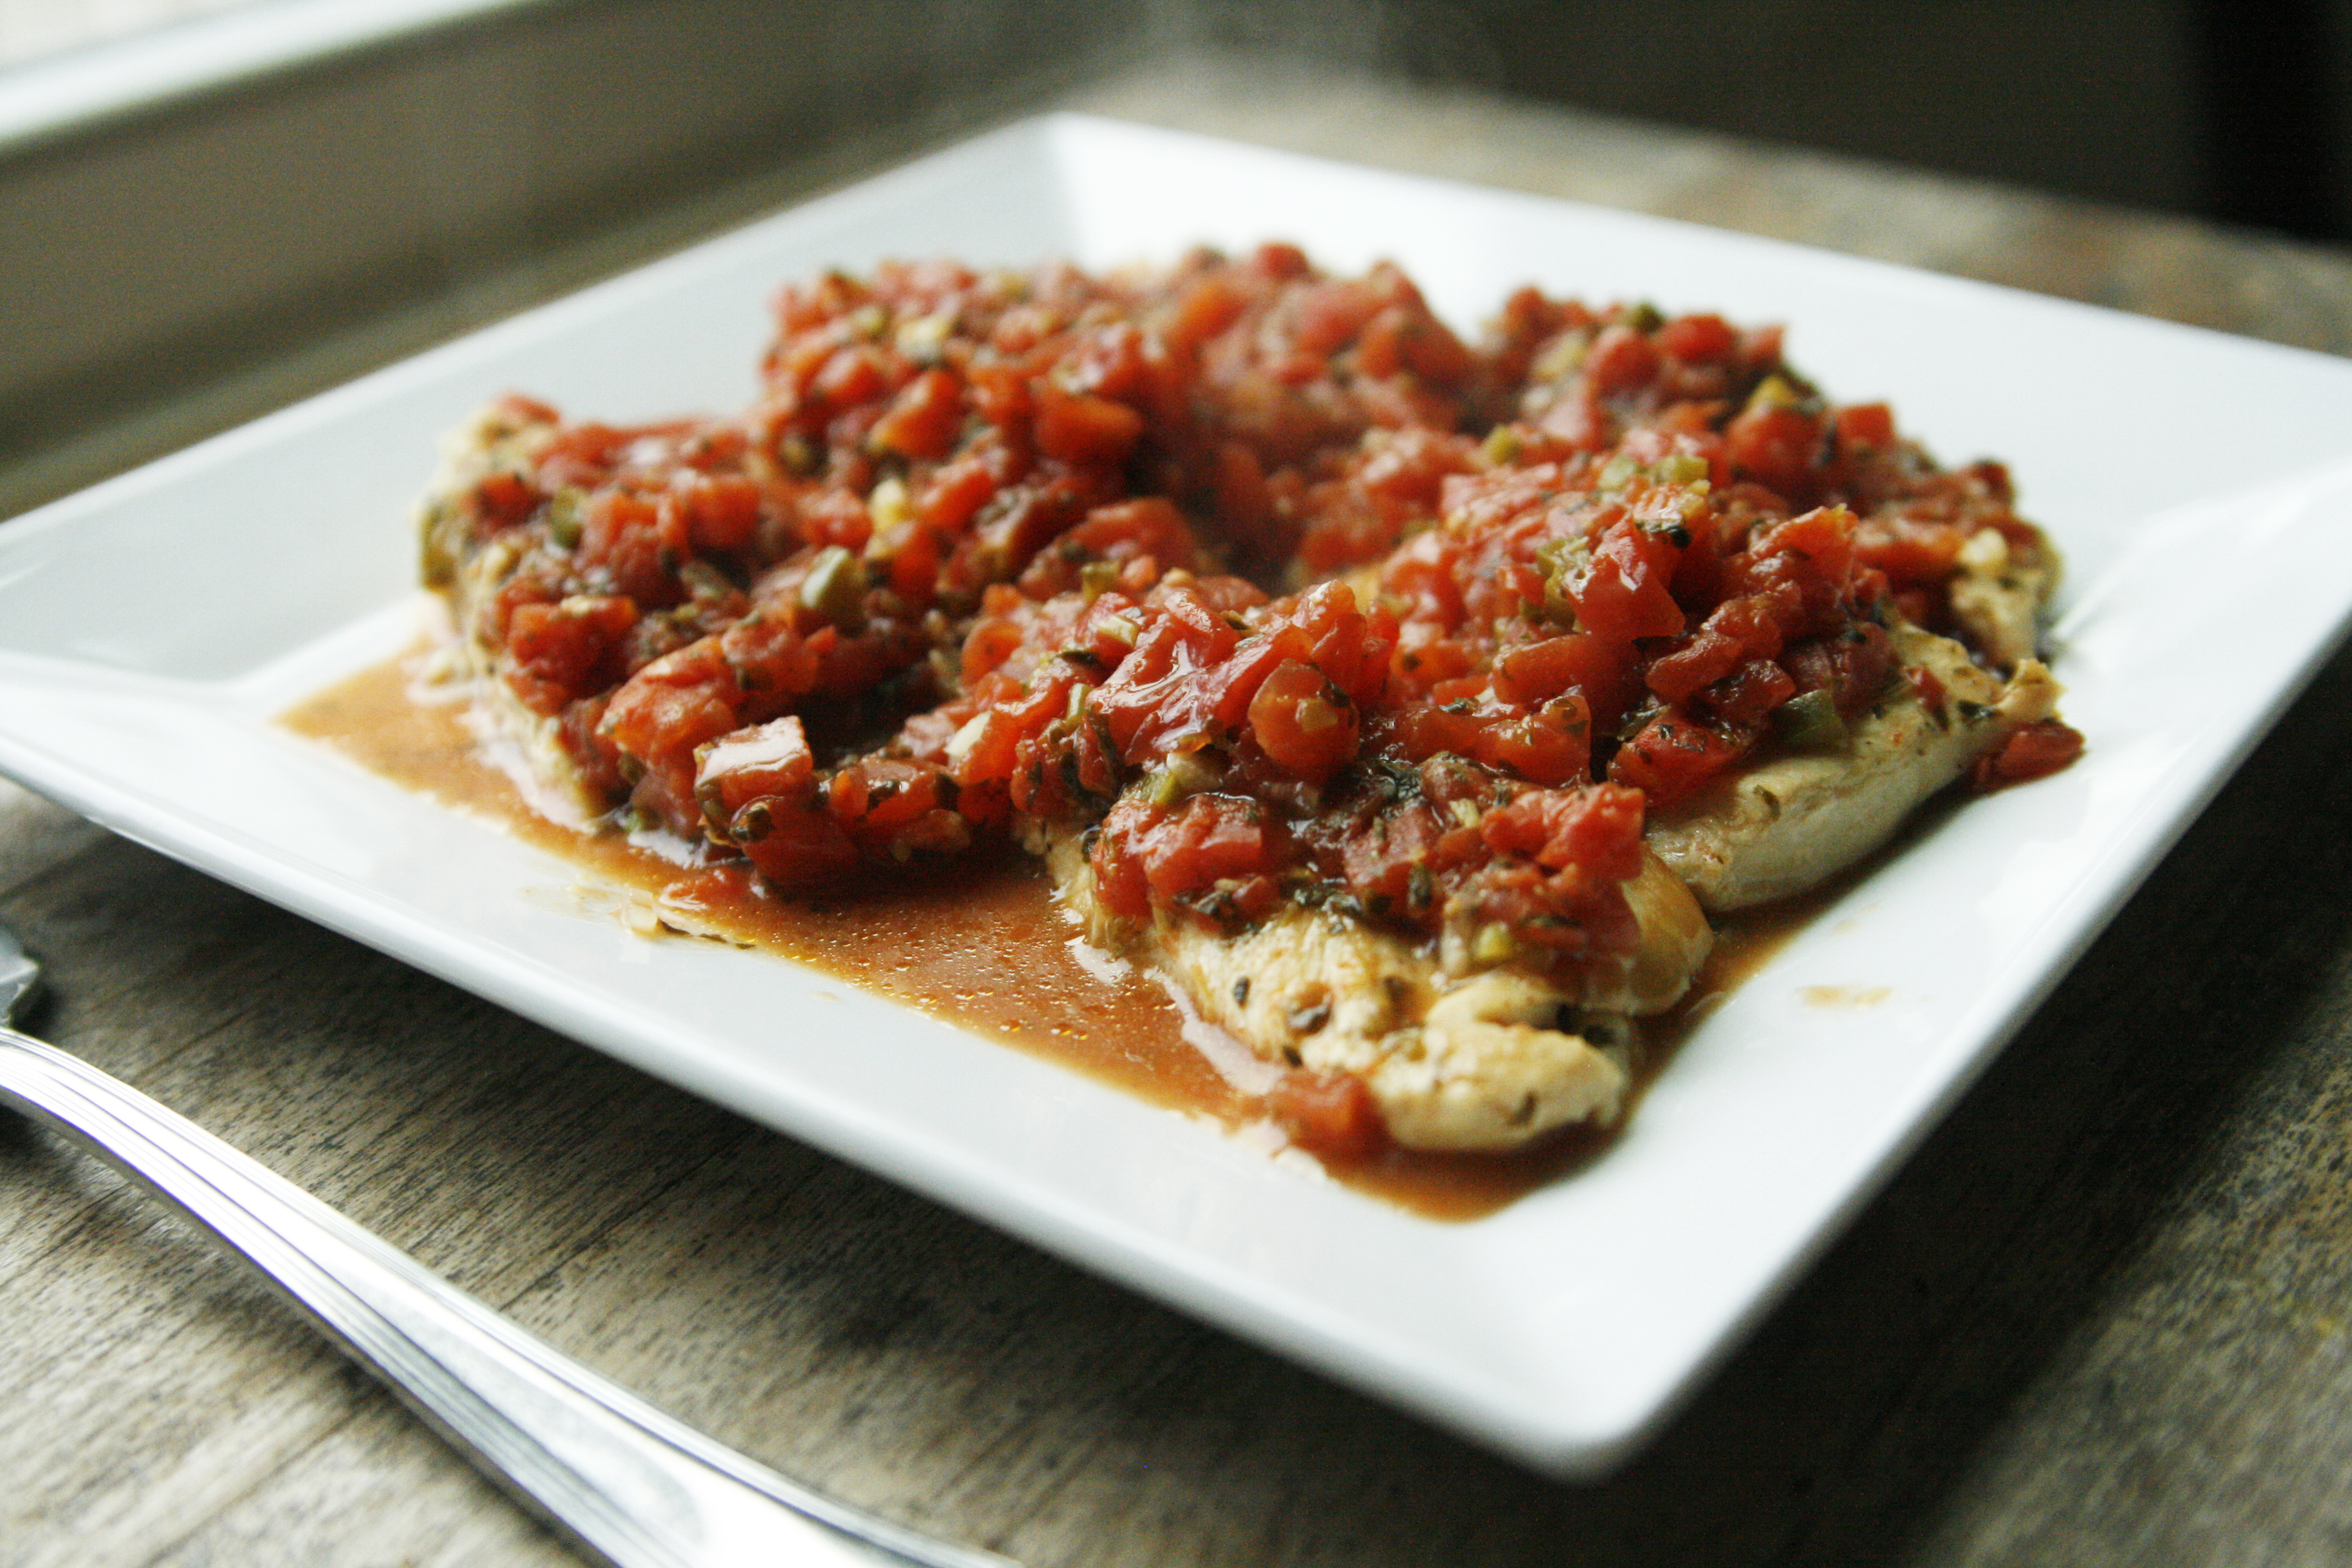 Pico De Gallo Chicken Skillet is shown on a plate. Chicken is topped with a red tomato salsa.